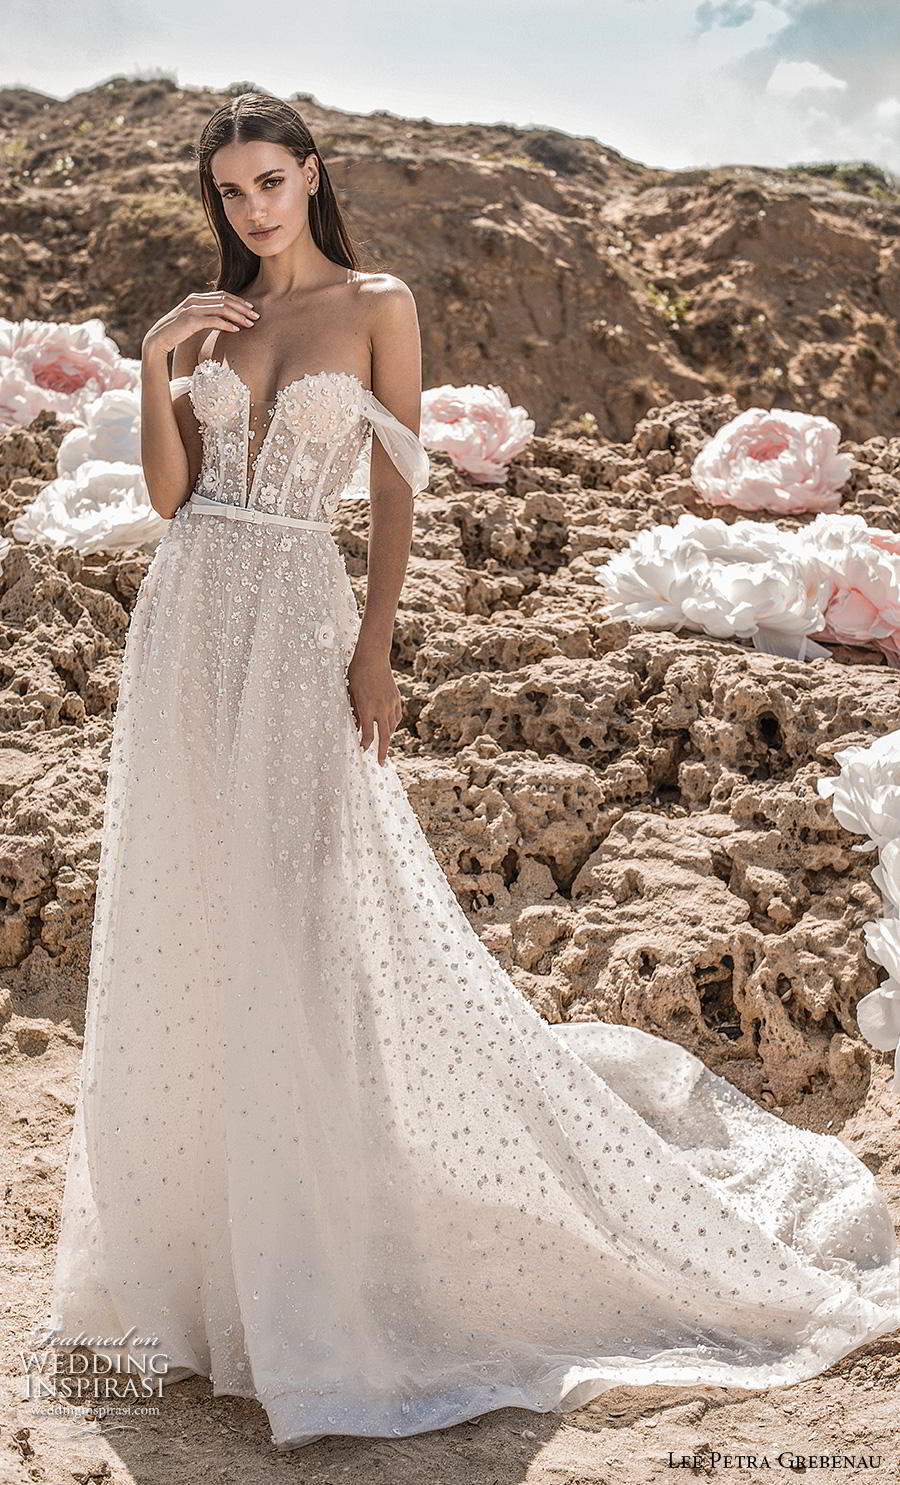 Lee Petra Grebenau 2019 robes de mariée